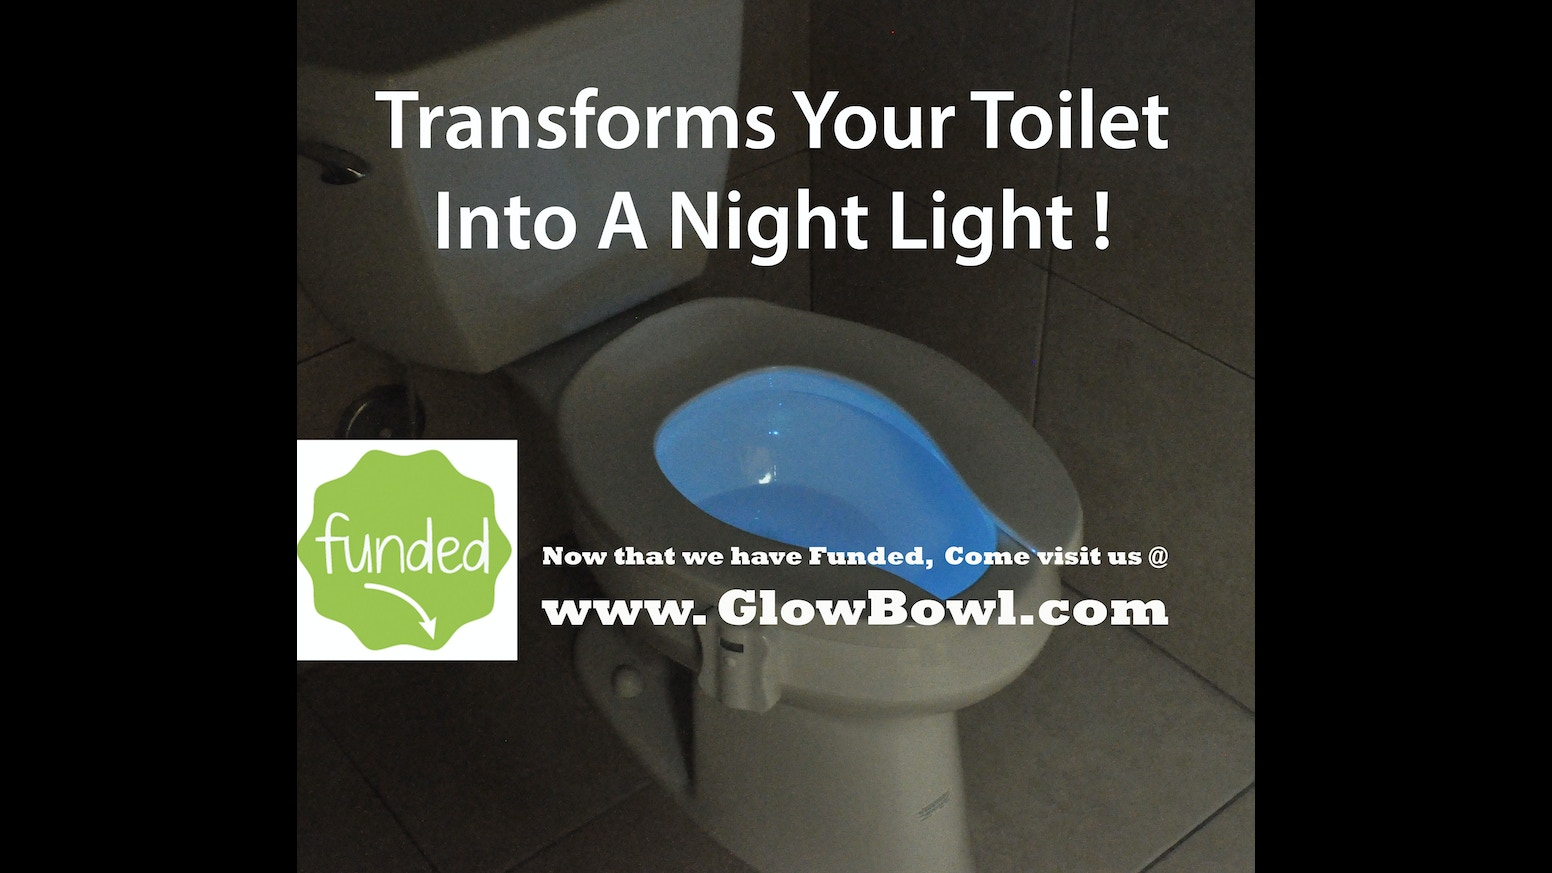 Led night light kickstarter - Transforms Your Toilet Into A Night Light 7 Led Colors To Choose With Just The